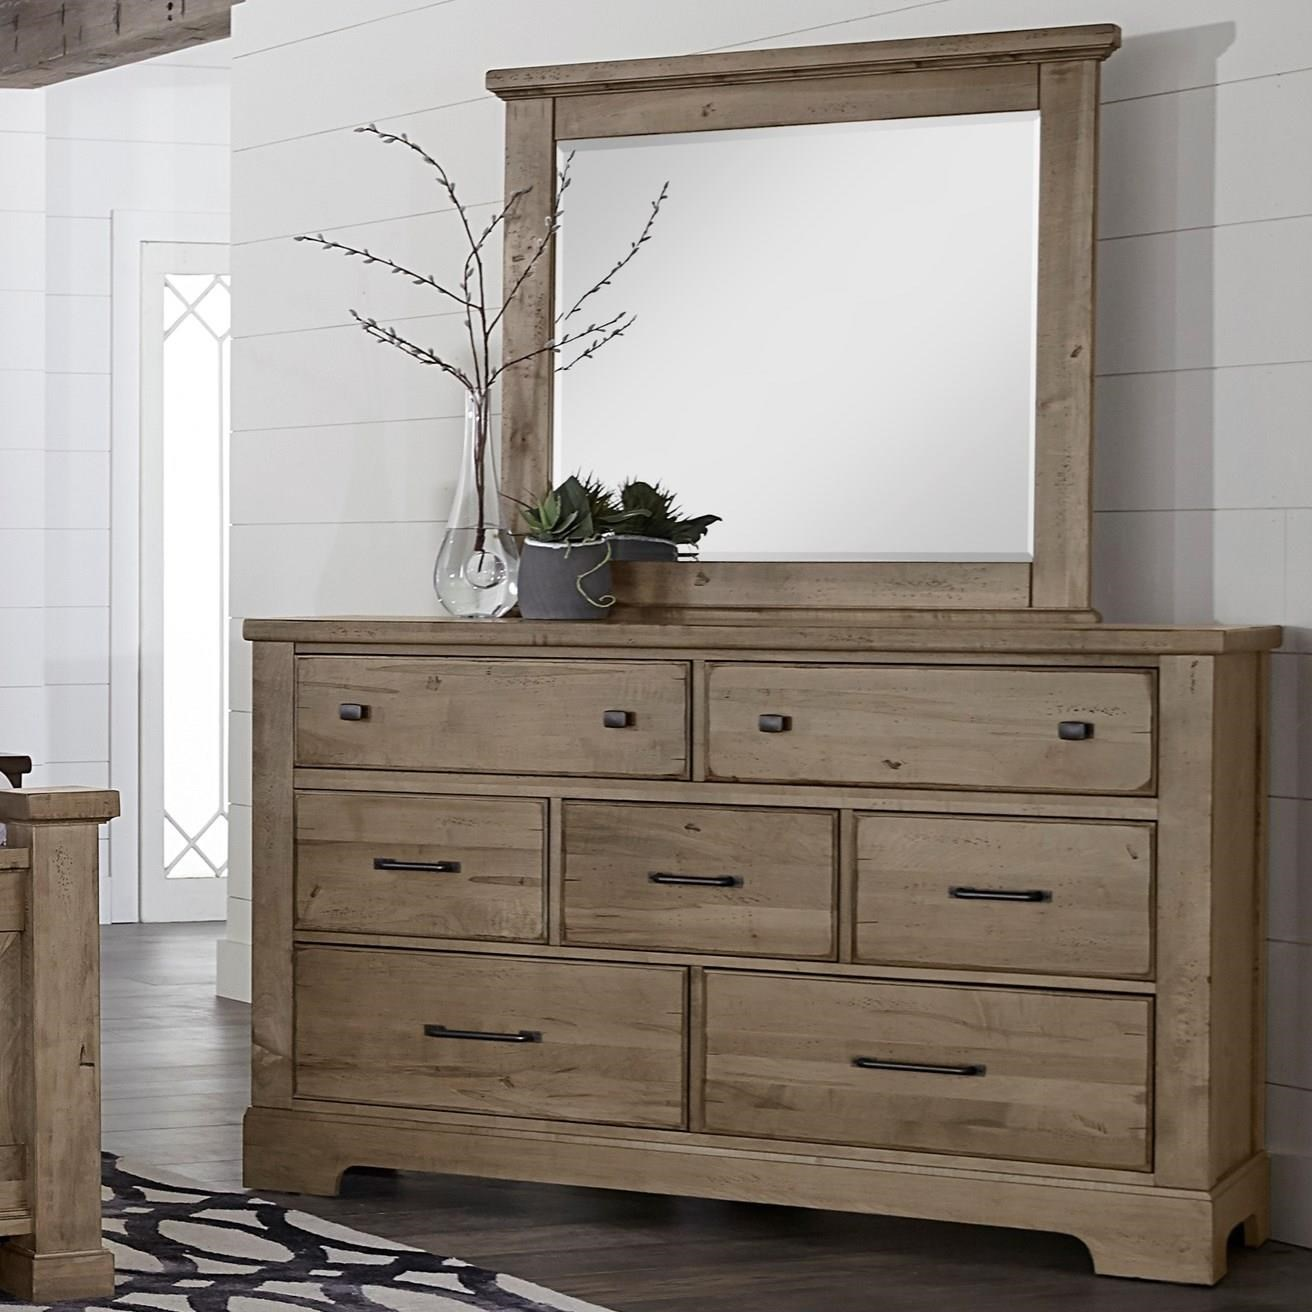 Artisan Amp Post Cool Rustic Solid Wood 7 Drawer Dresser And